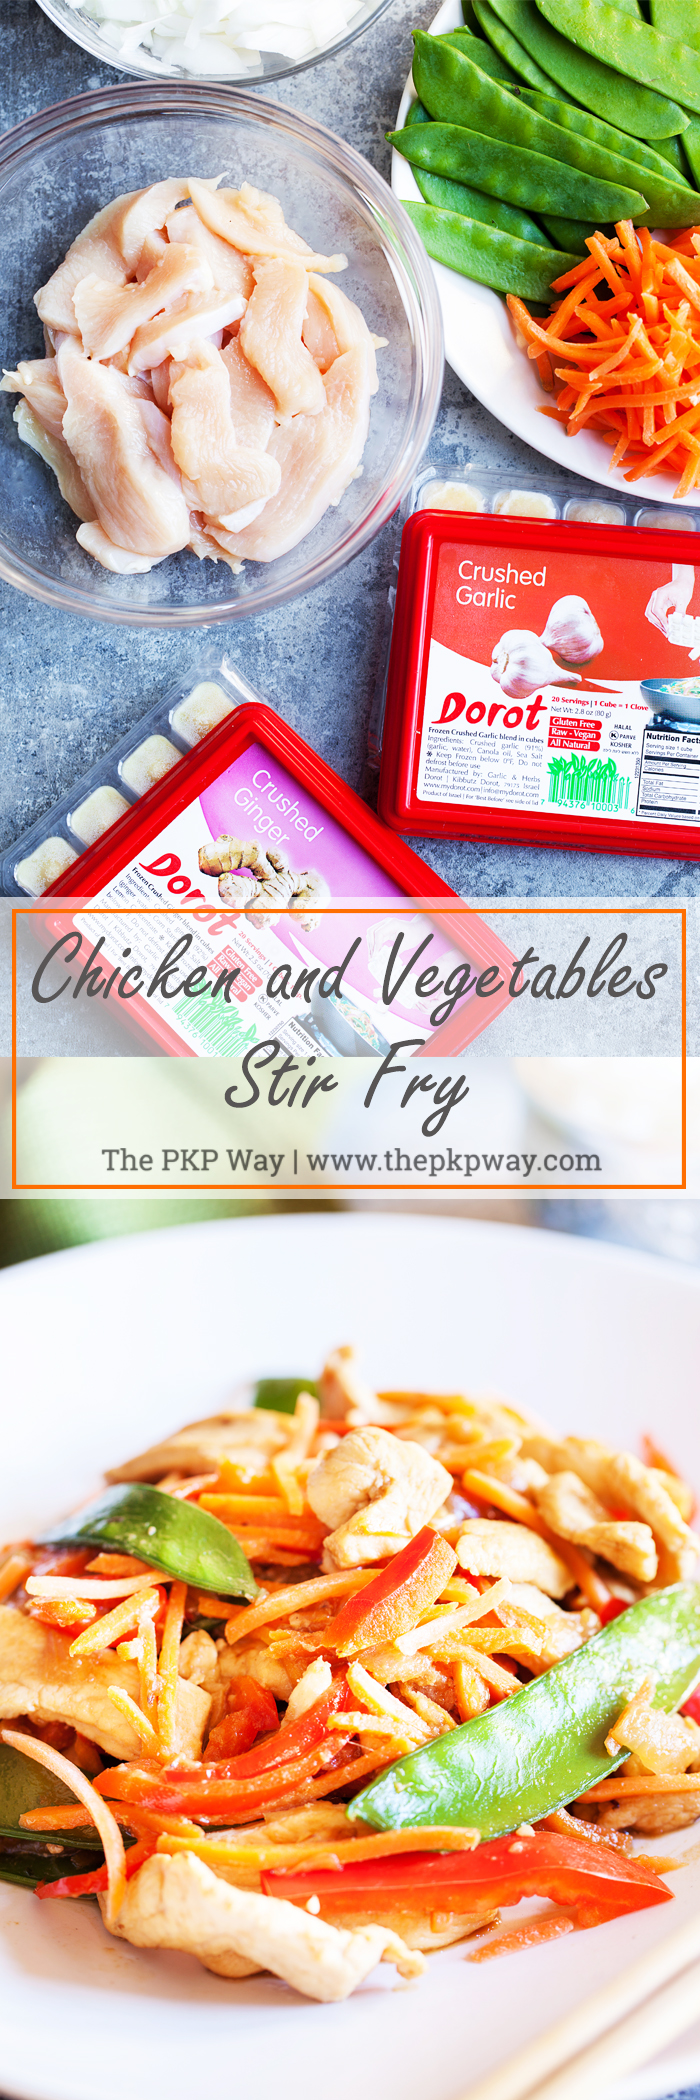 Colorful, delicious, and healthy, Chicken and Vegetables Stir Fry can be thrown together quickly with little to no effort.